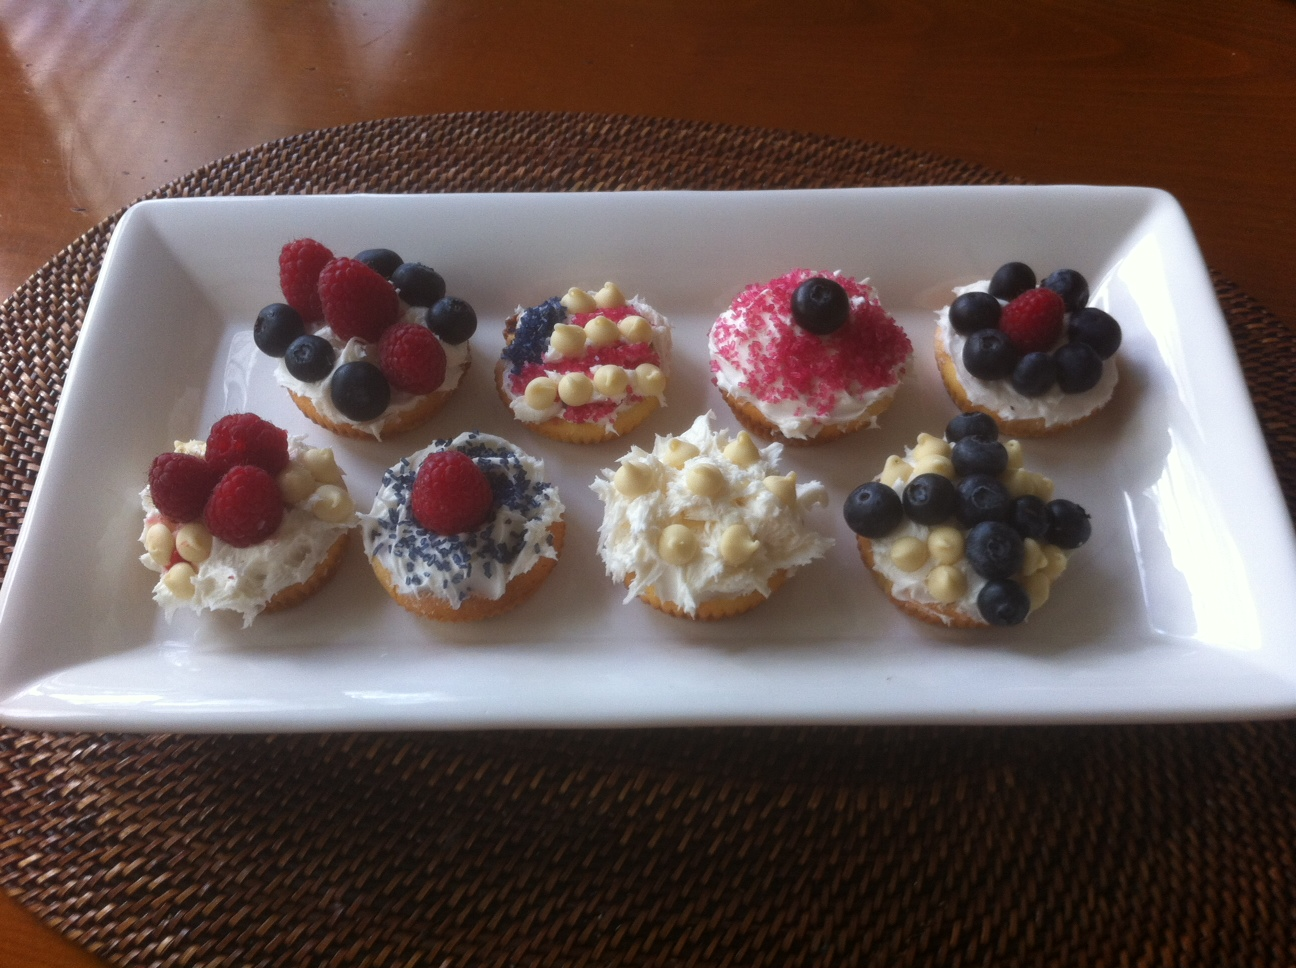 Kate 4th of July cupcakes